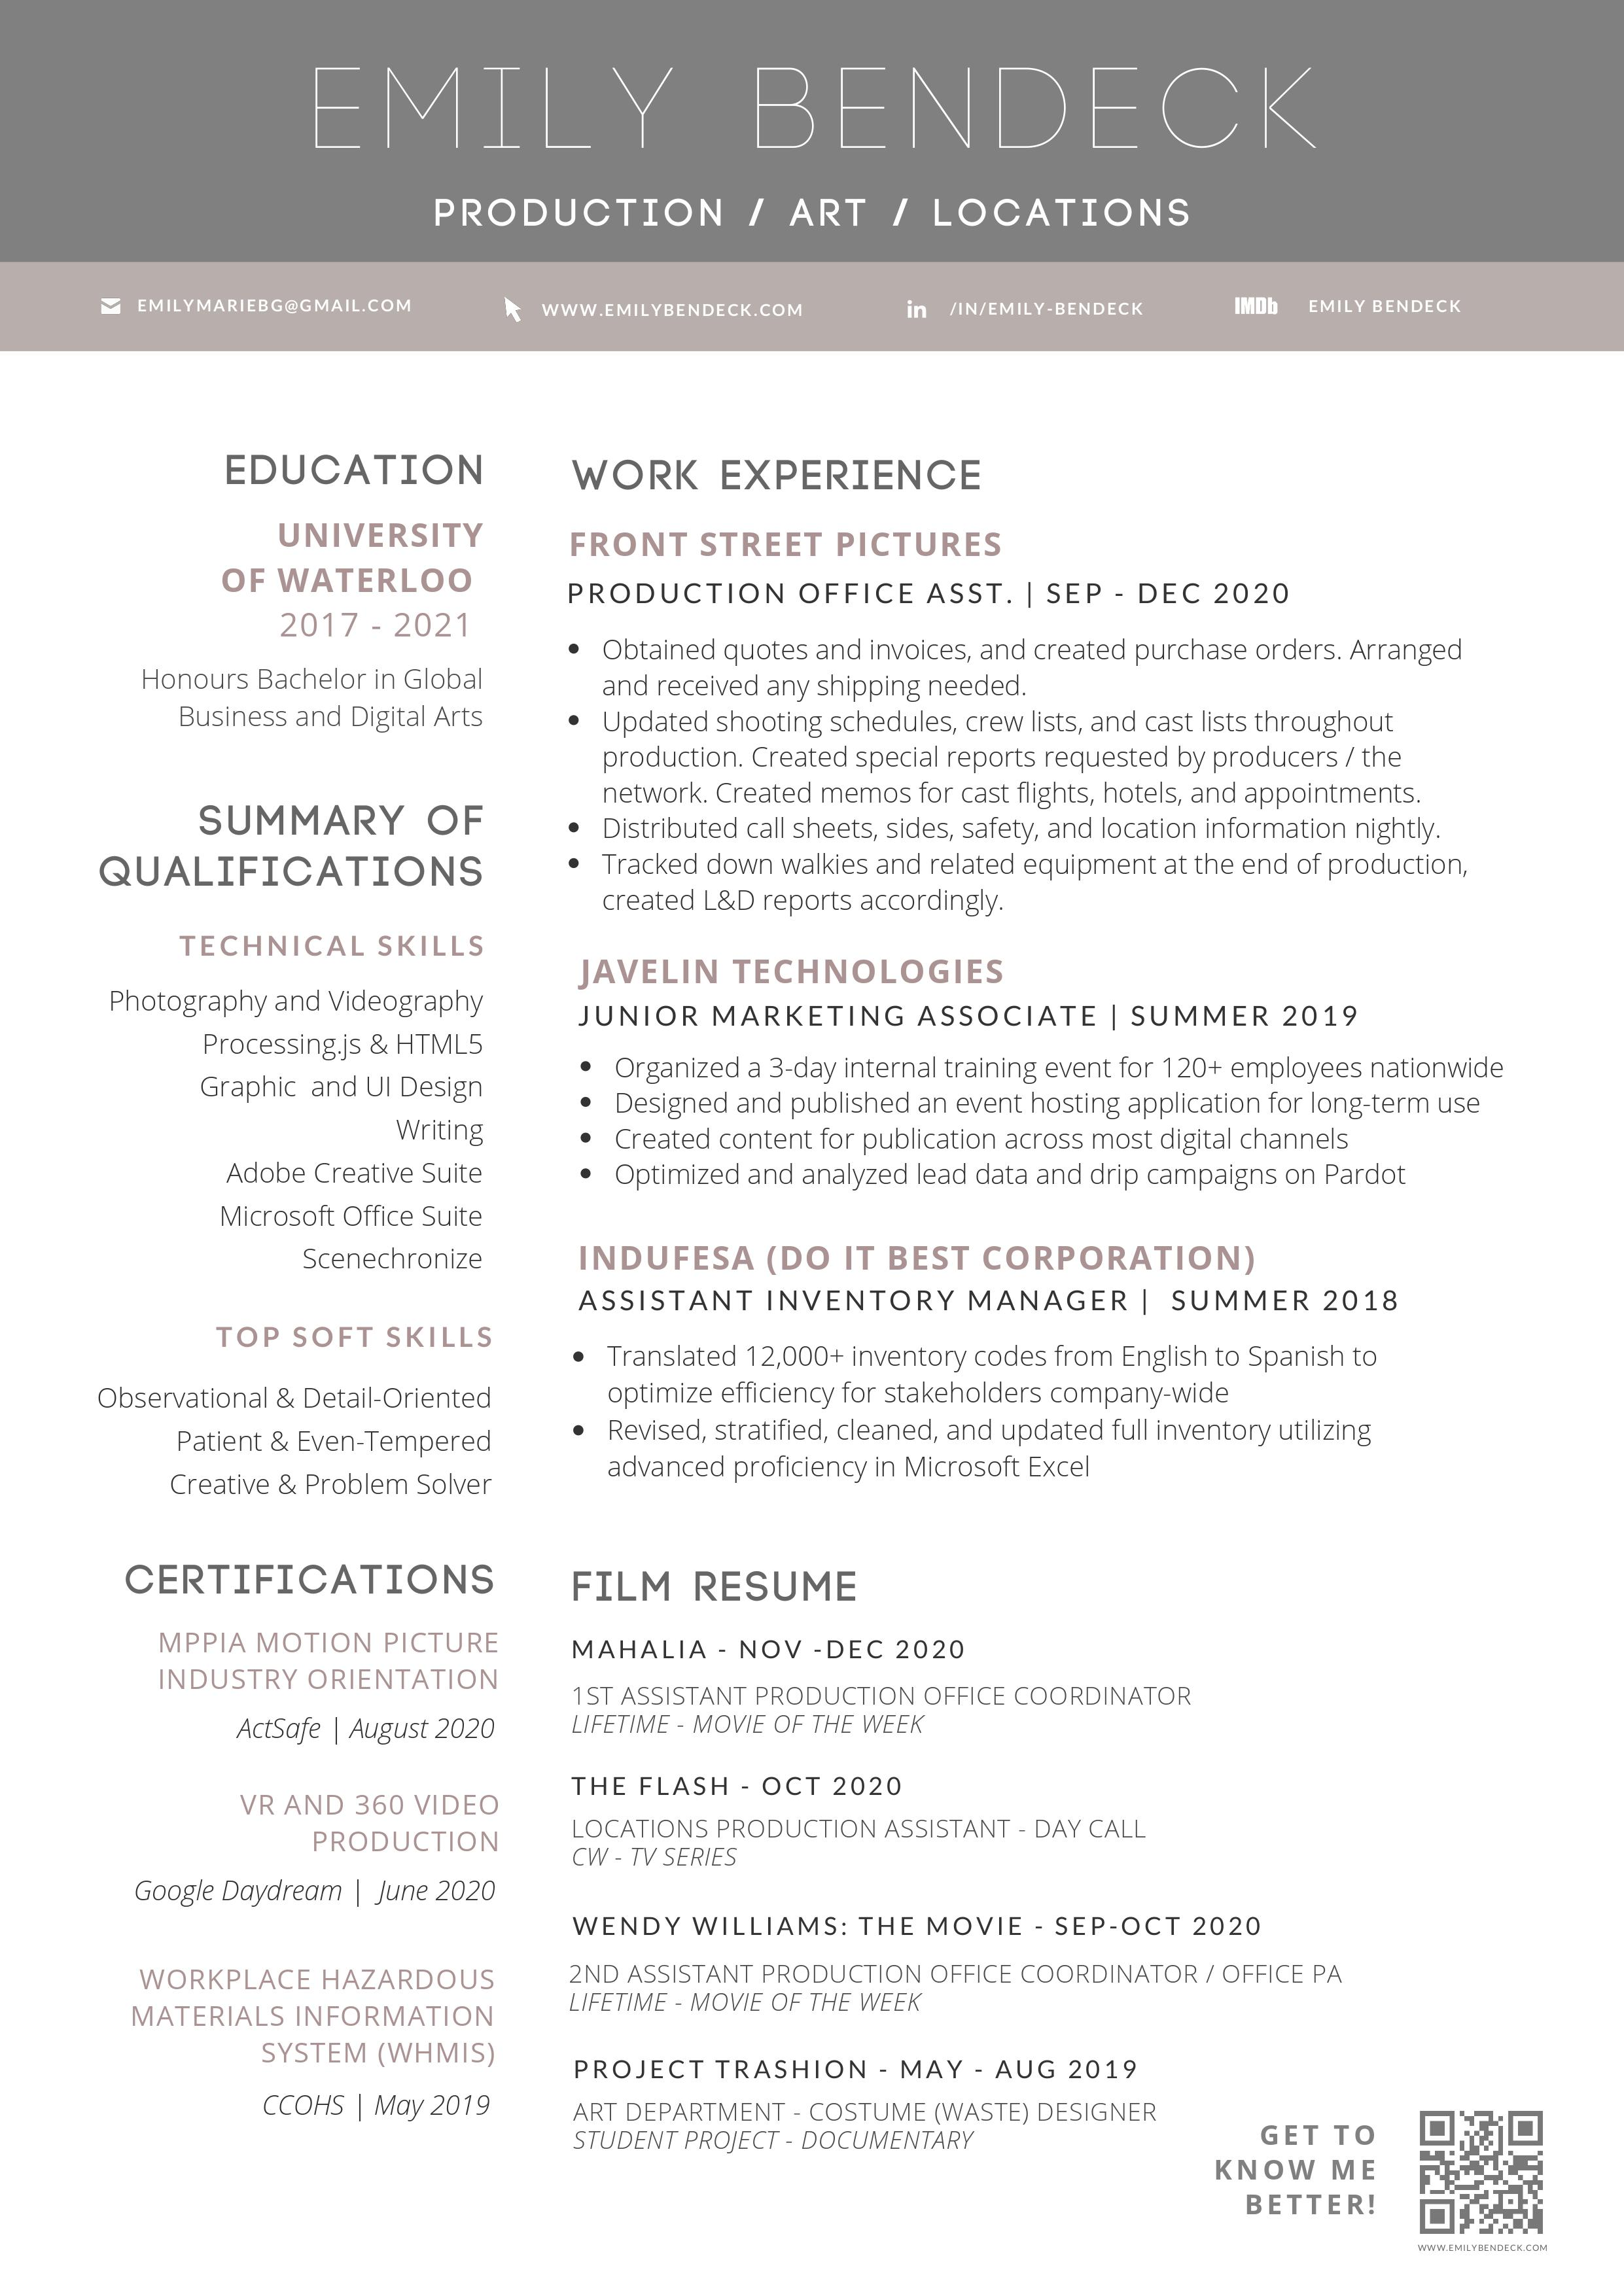 Resume. To get the accesible PDF, download it to the top right.